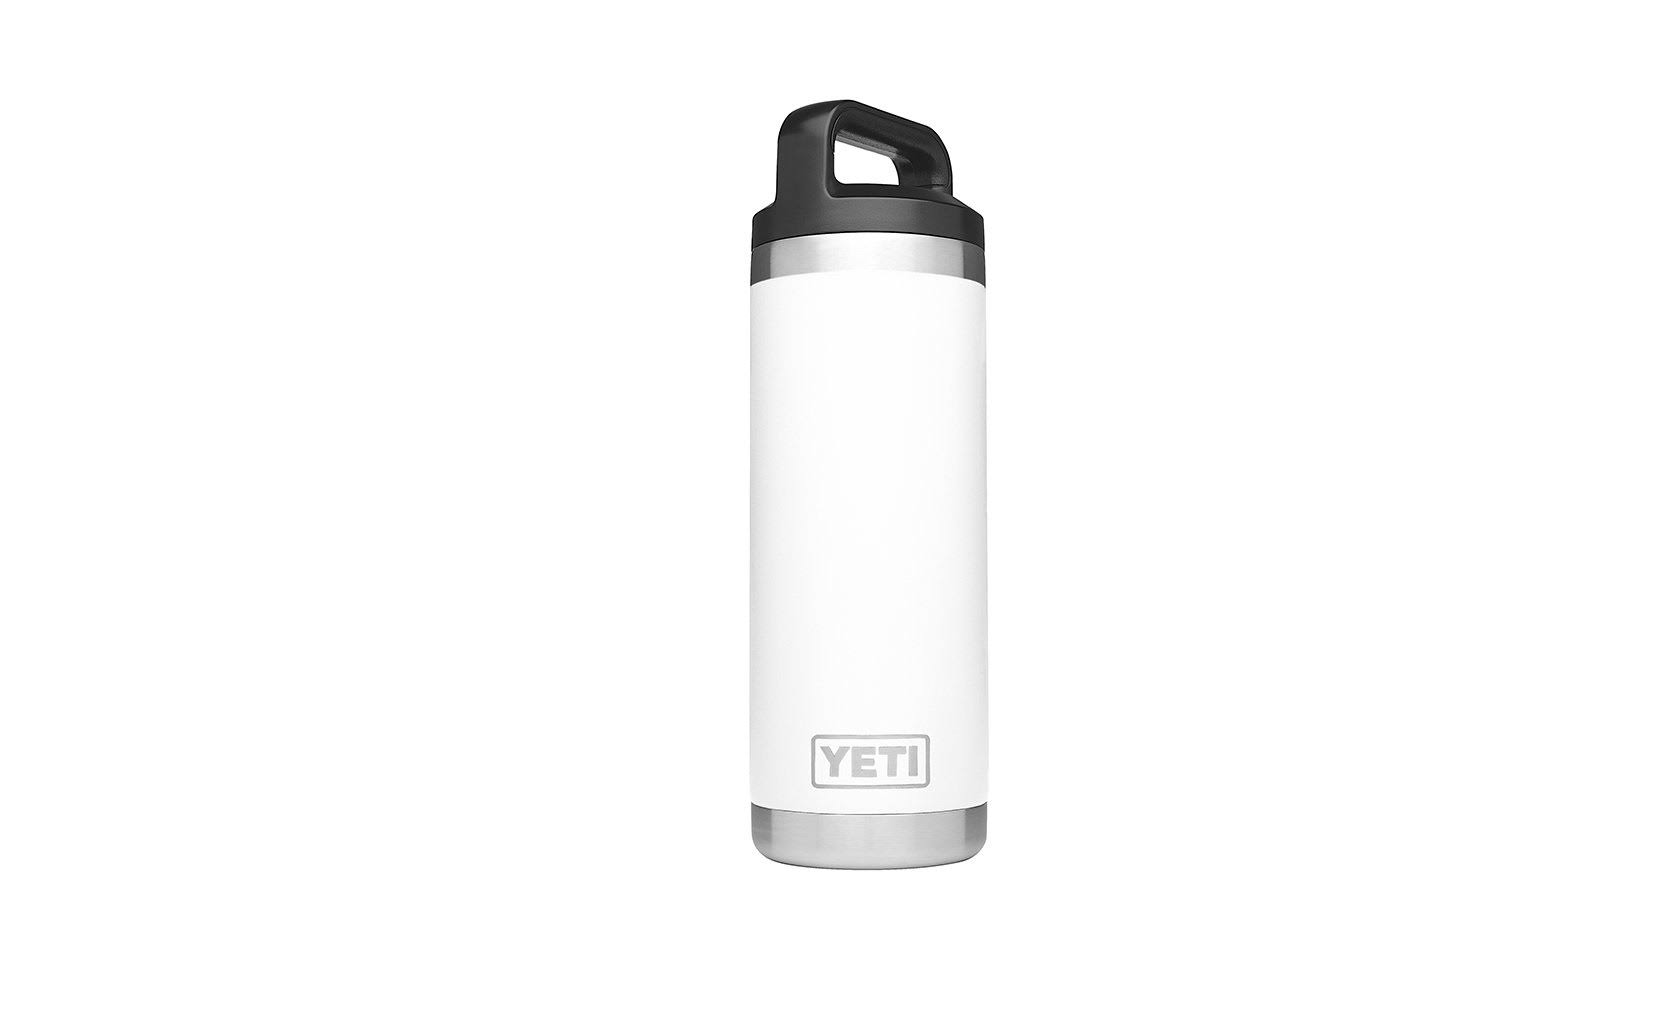 Yeti Rambler Stainless Steel Insulated Water Bottle - White, 18oz